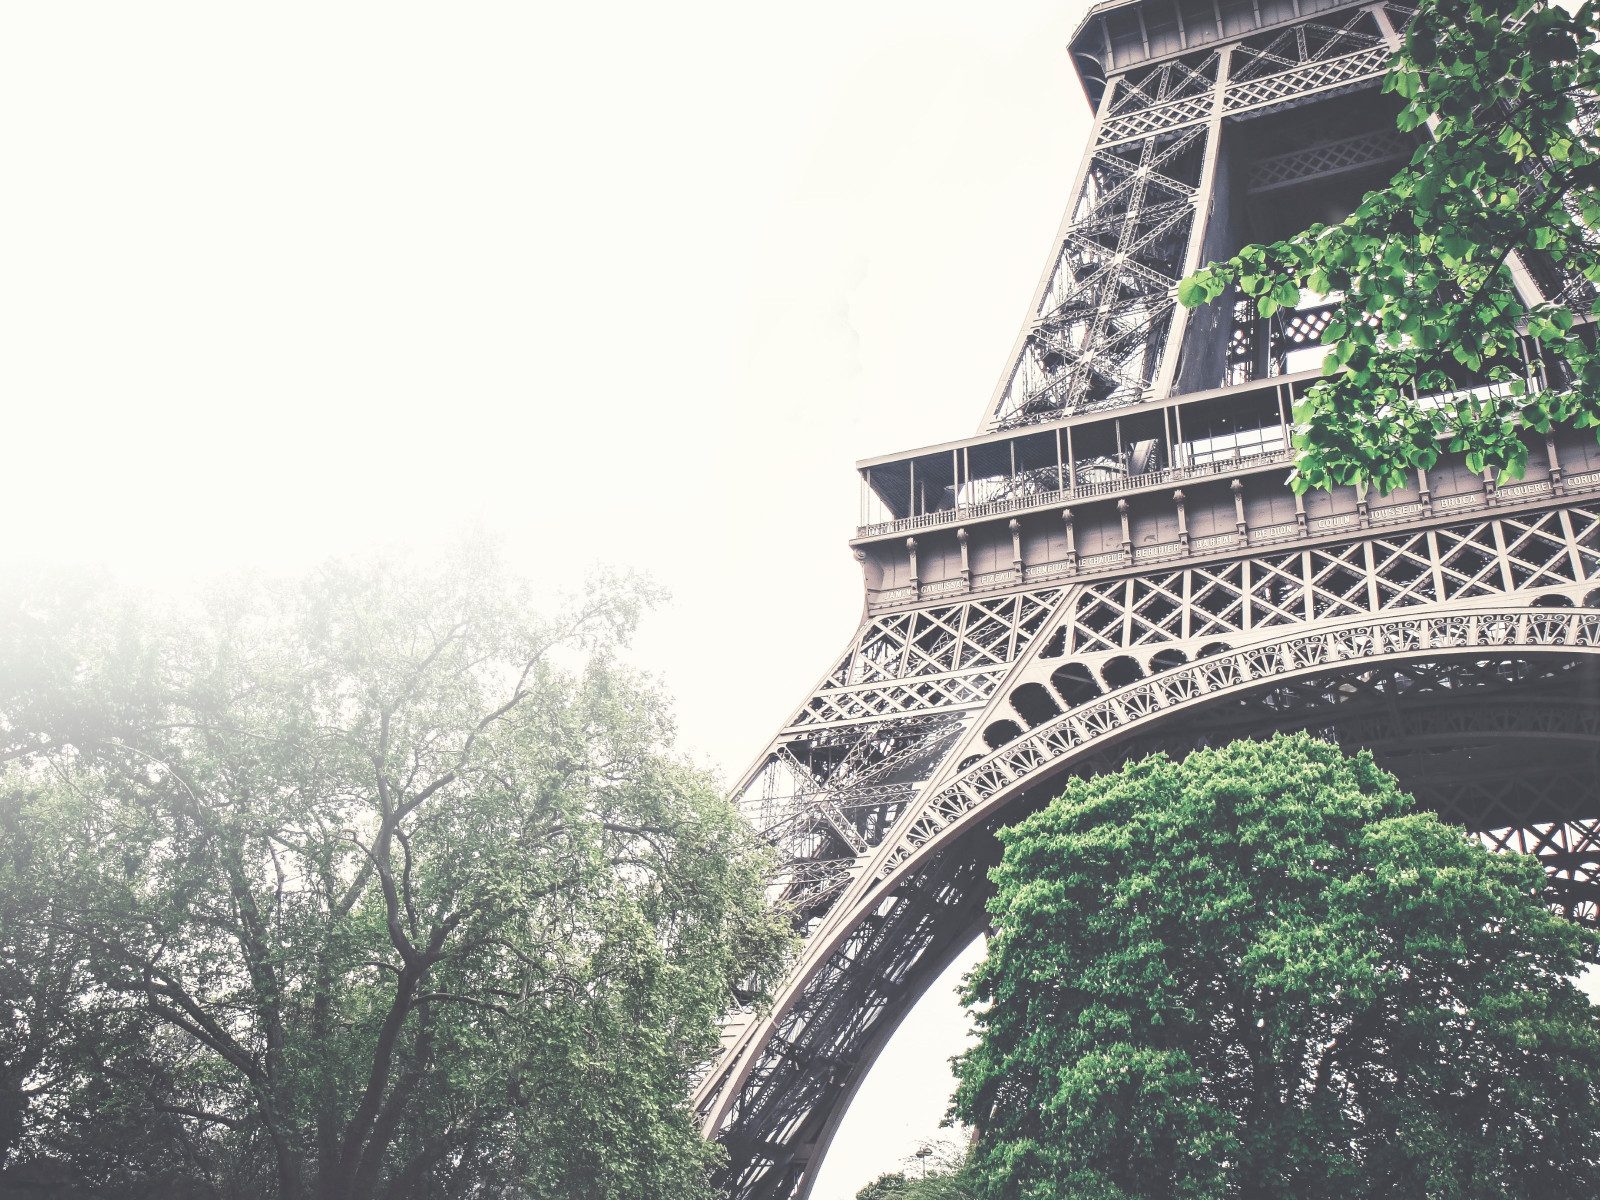 Tour Eiffel in a foggy day | 1600x1200 wallpaper